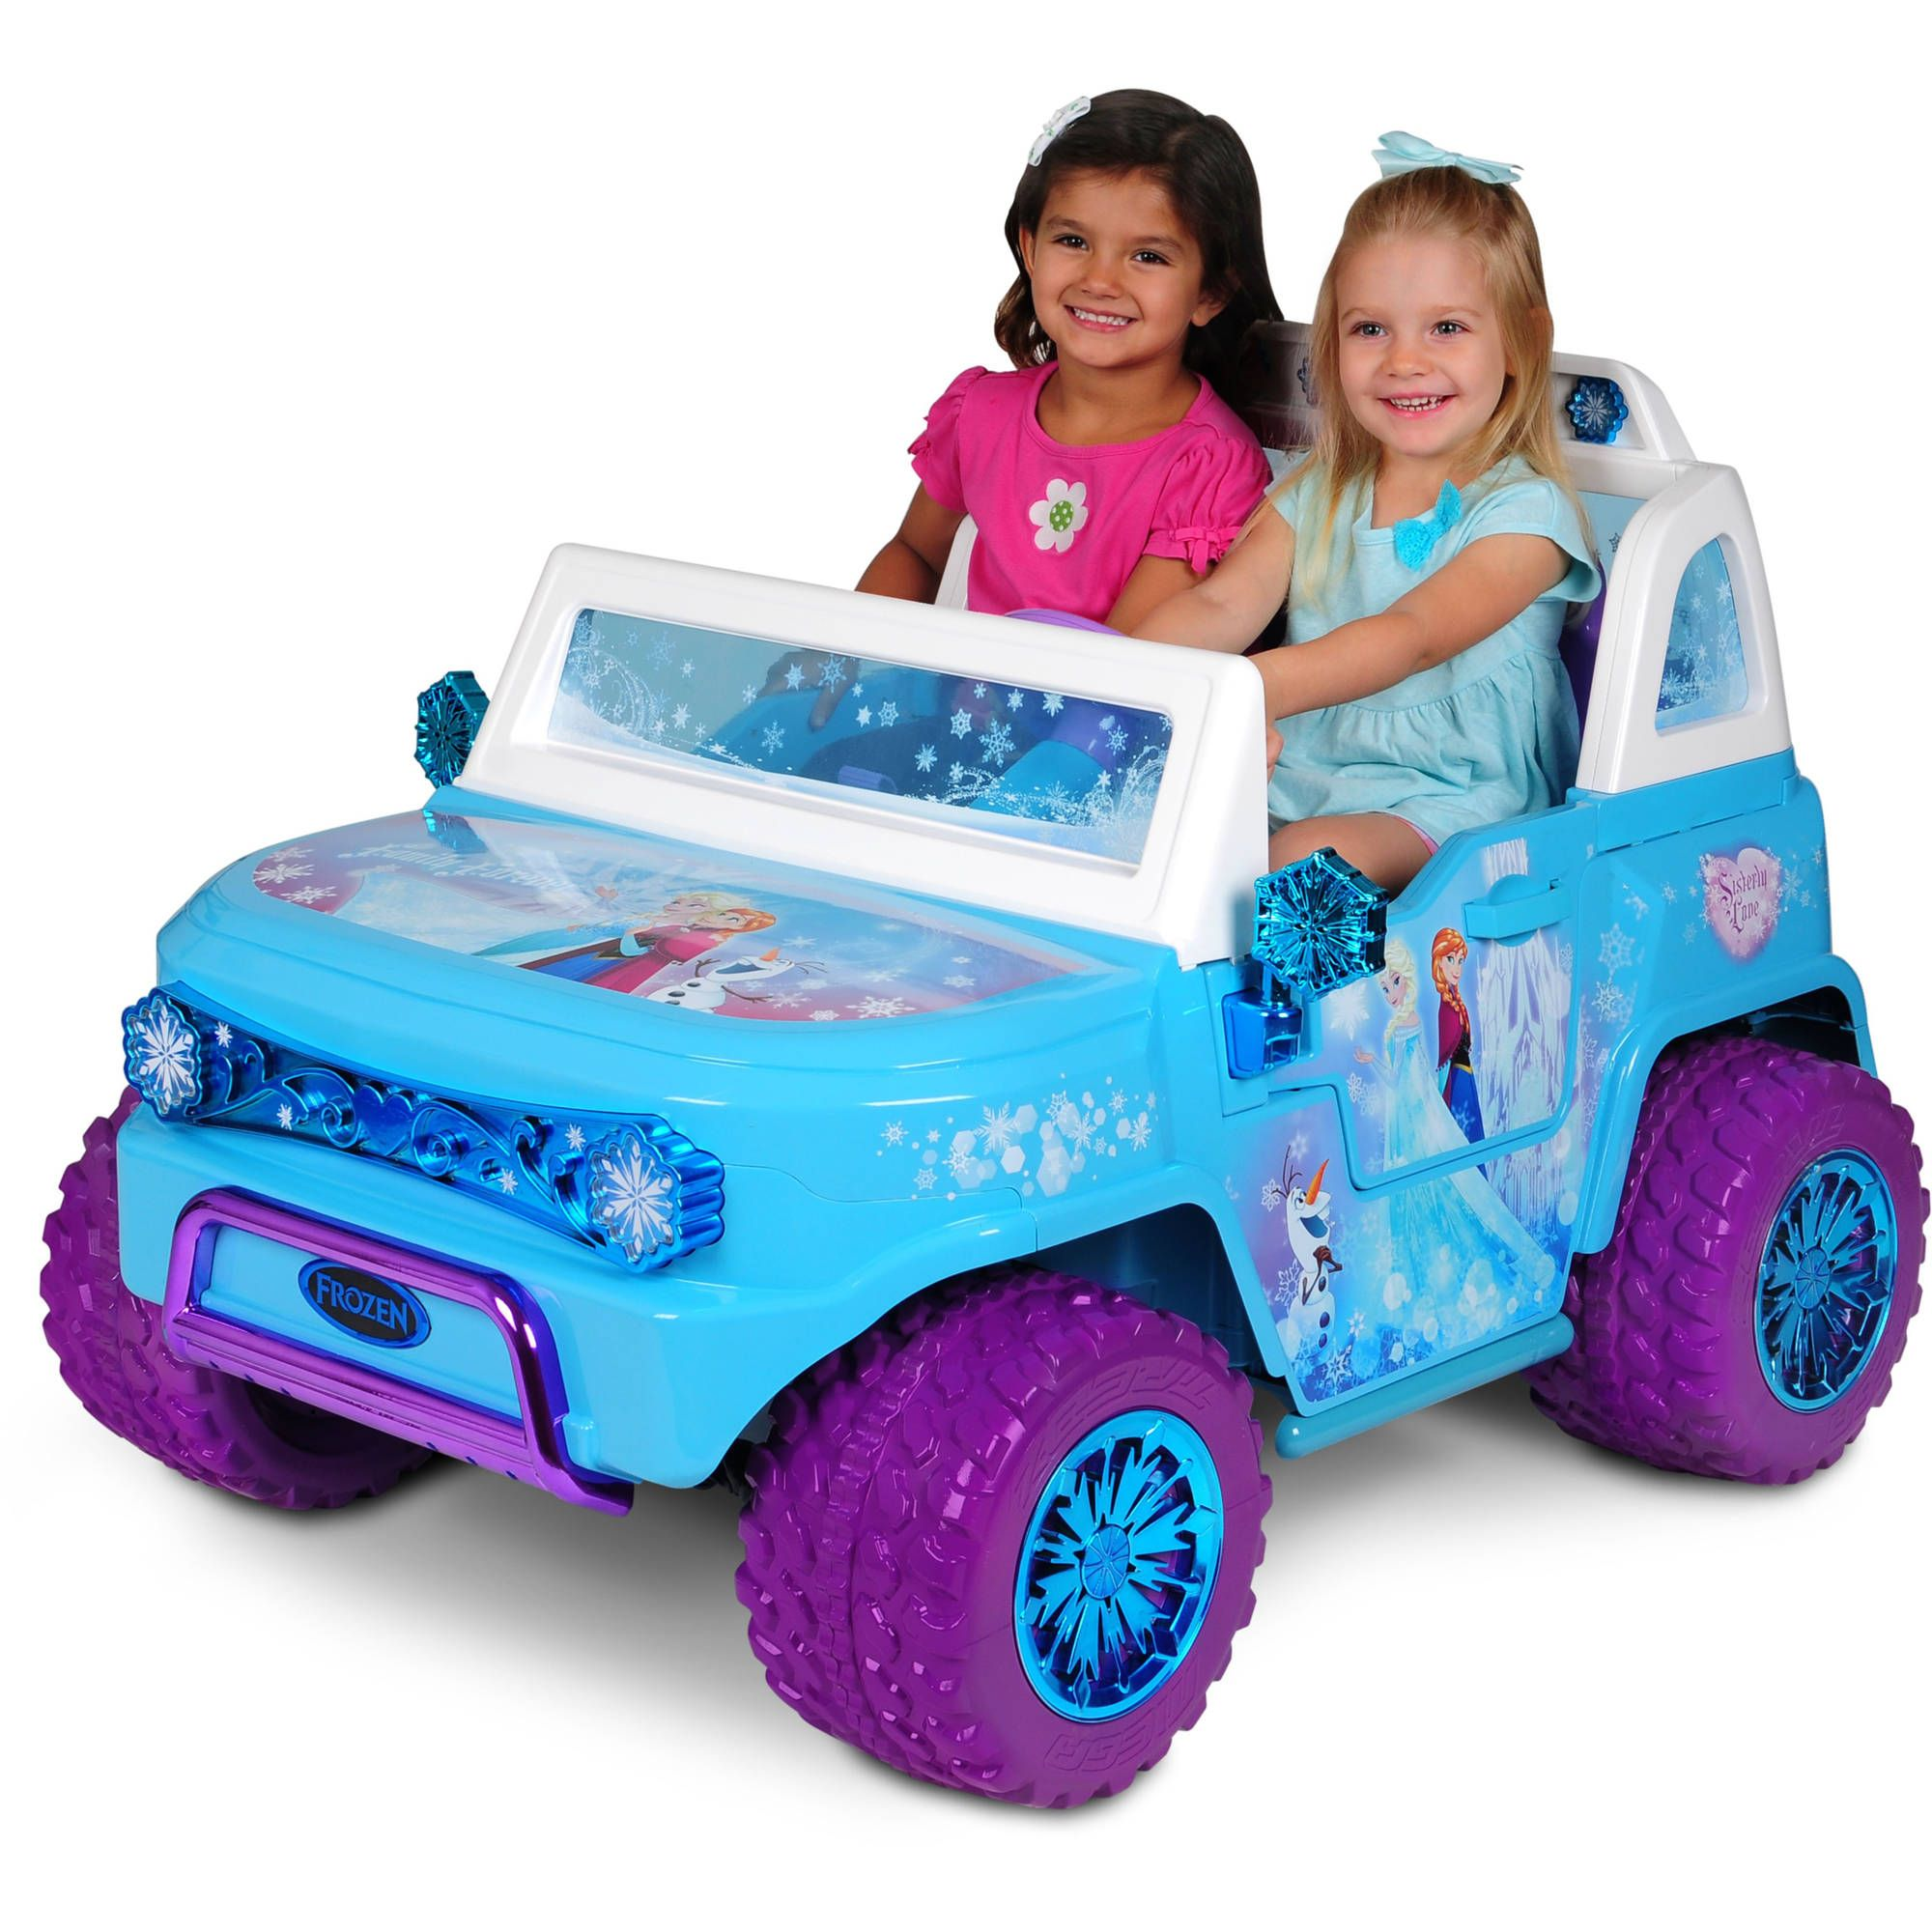 Find And Compare More Children Toys Deals At Httpextrabigfootcomproductsquerychild%20Toysdr50%2C100